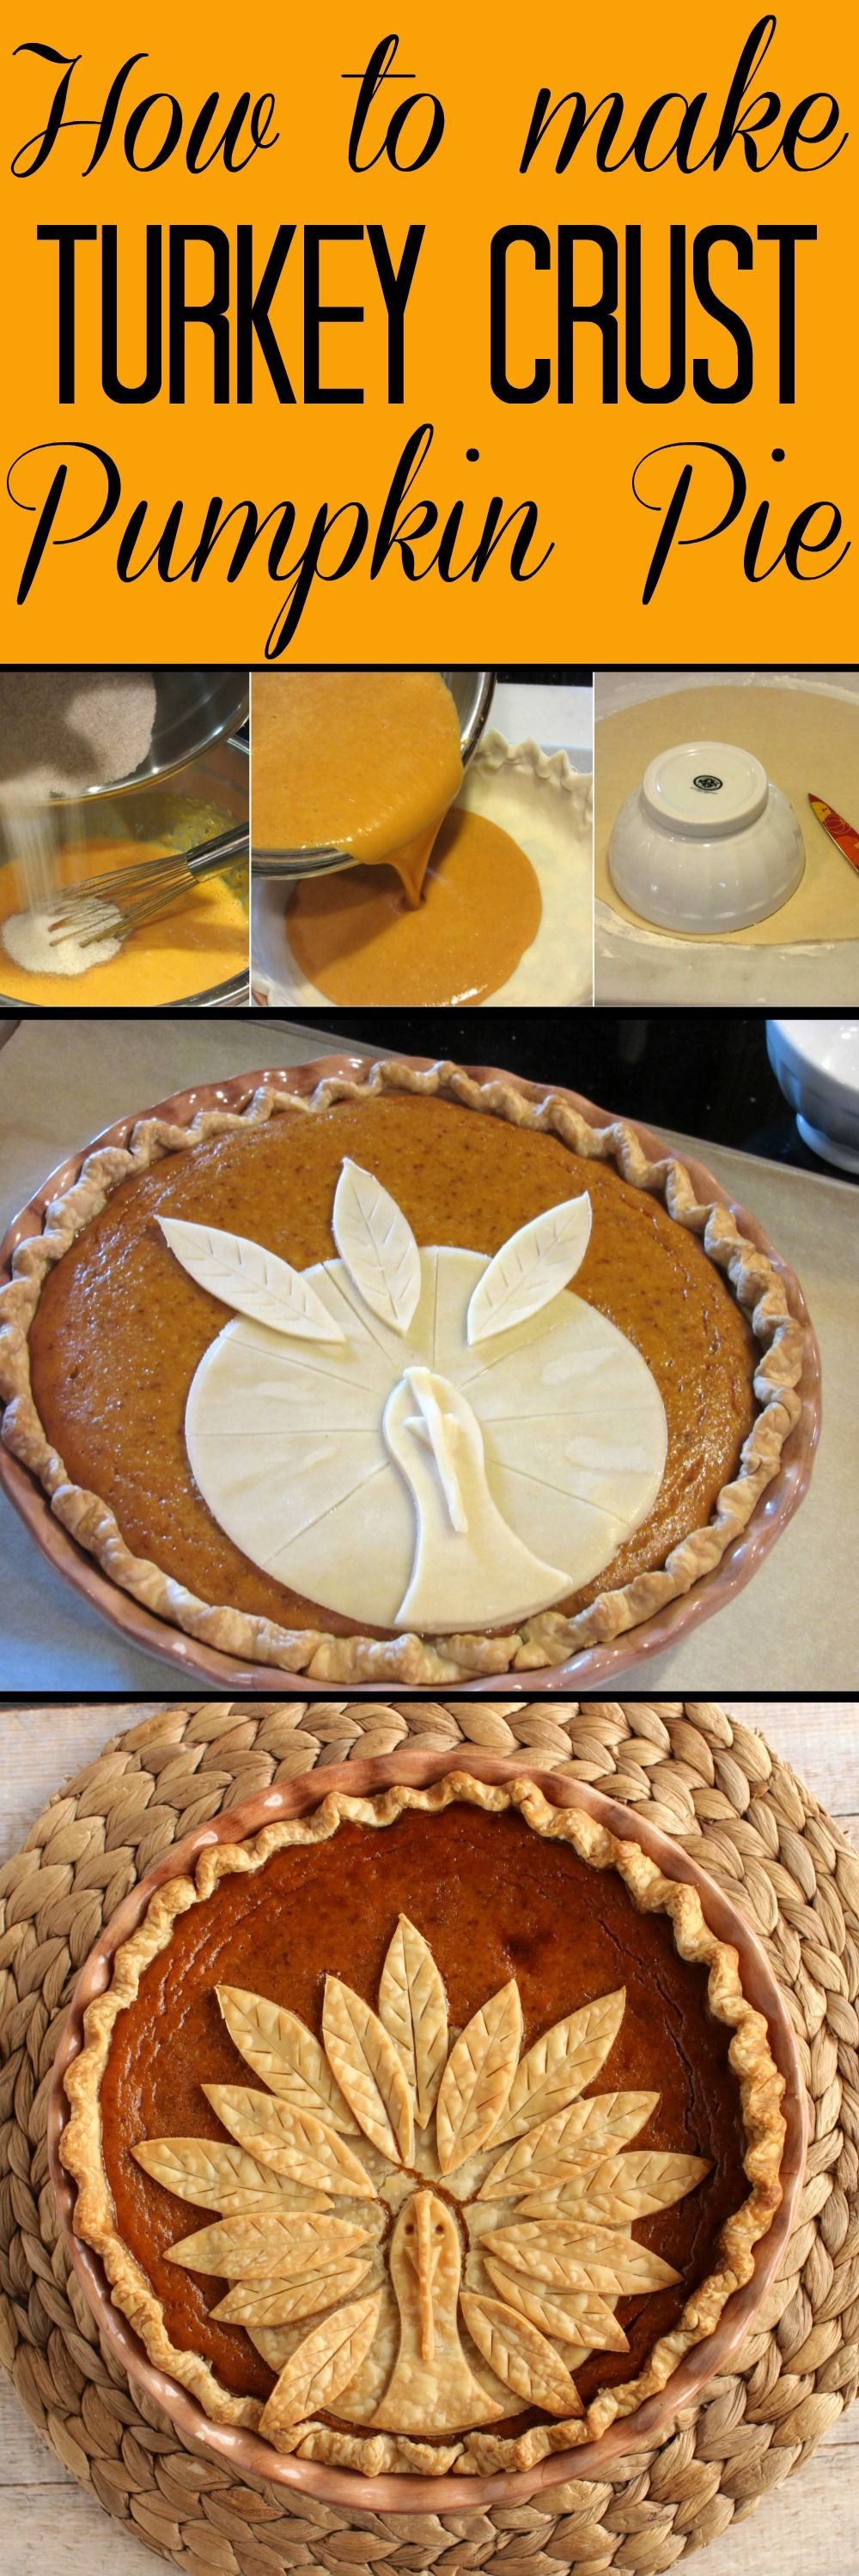 Thanksgiving Pumpkin Pie  Adorable Turkey Crust Pumpkin Pie Recipe